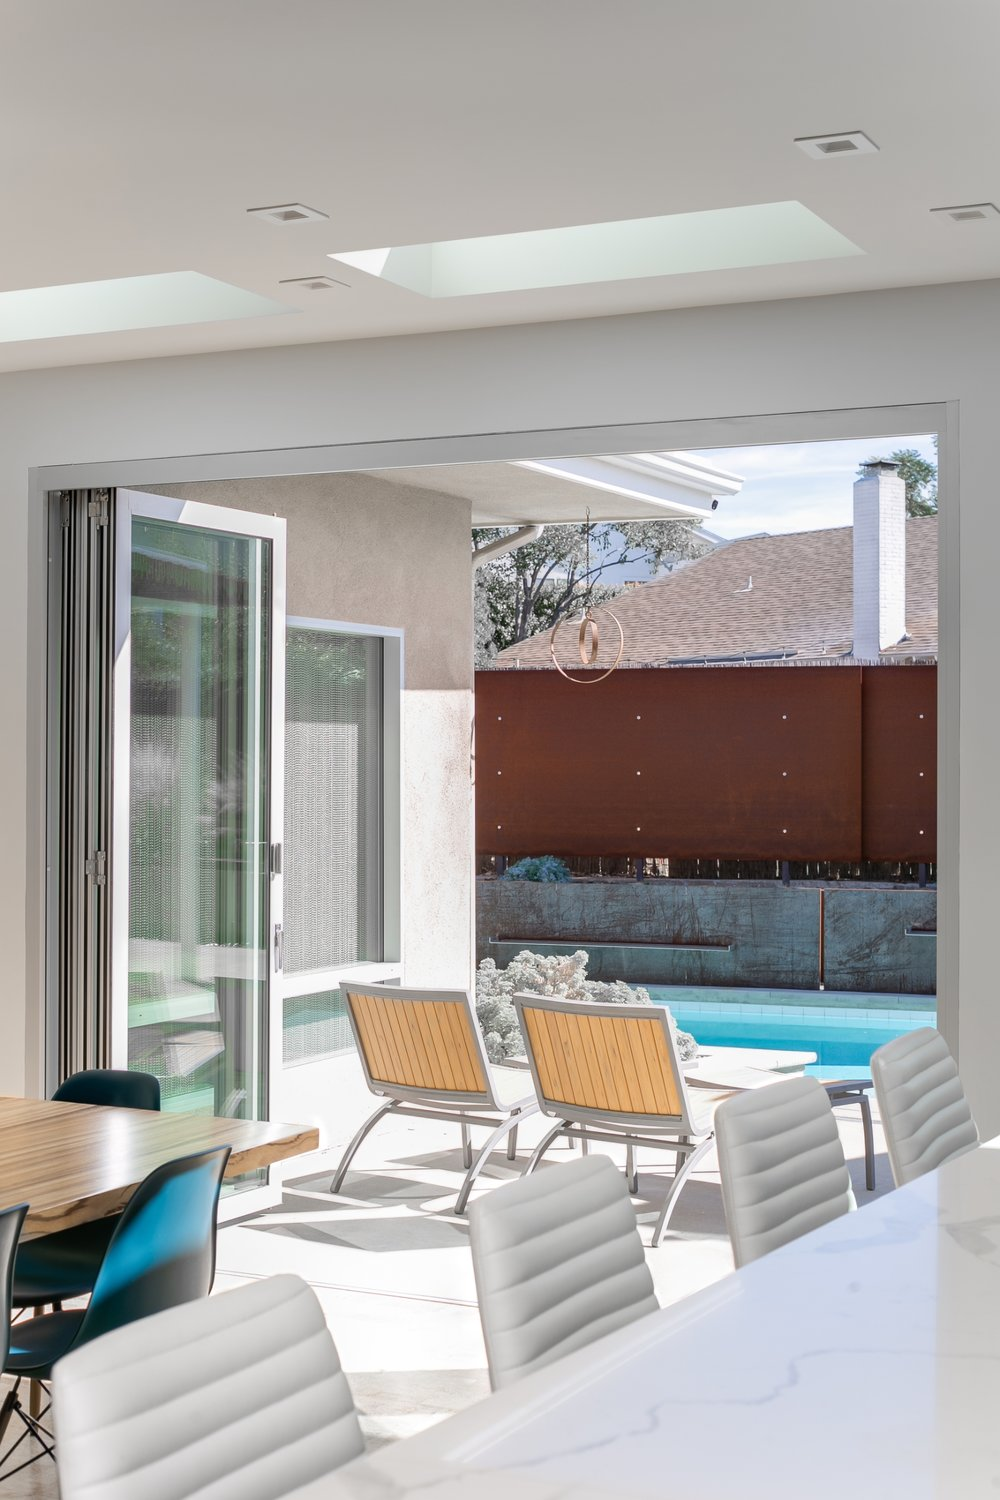 Indoor-outdoor living: the folding patio doors open the kitchen and dining room onto the exterior and a Corten pool